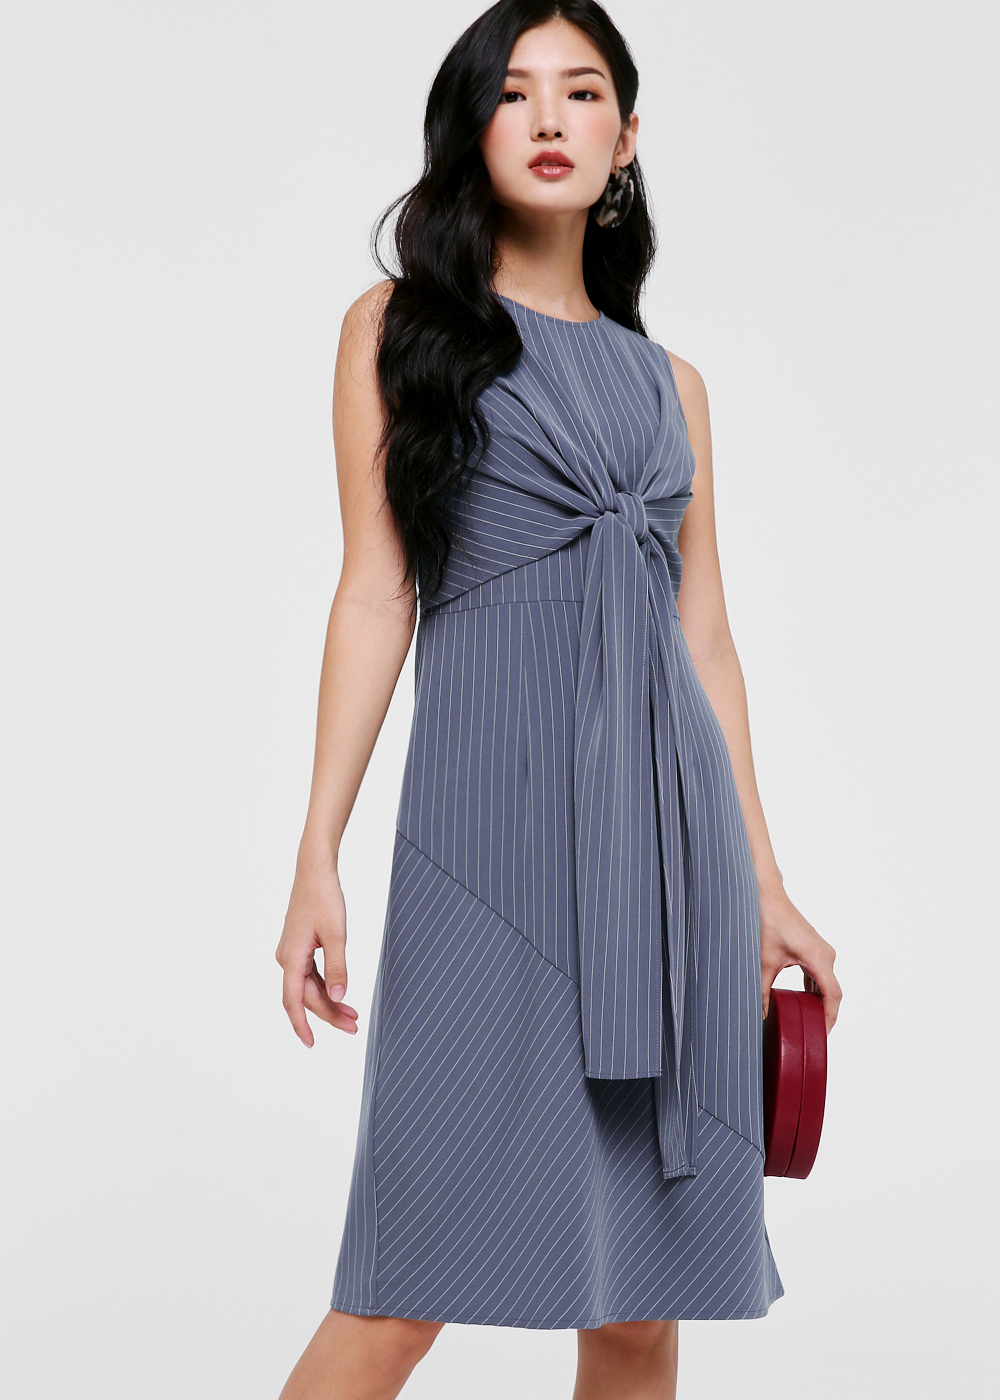 Helexa Tie Front Midi Dress